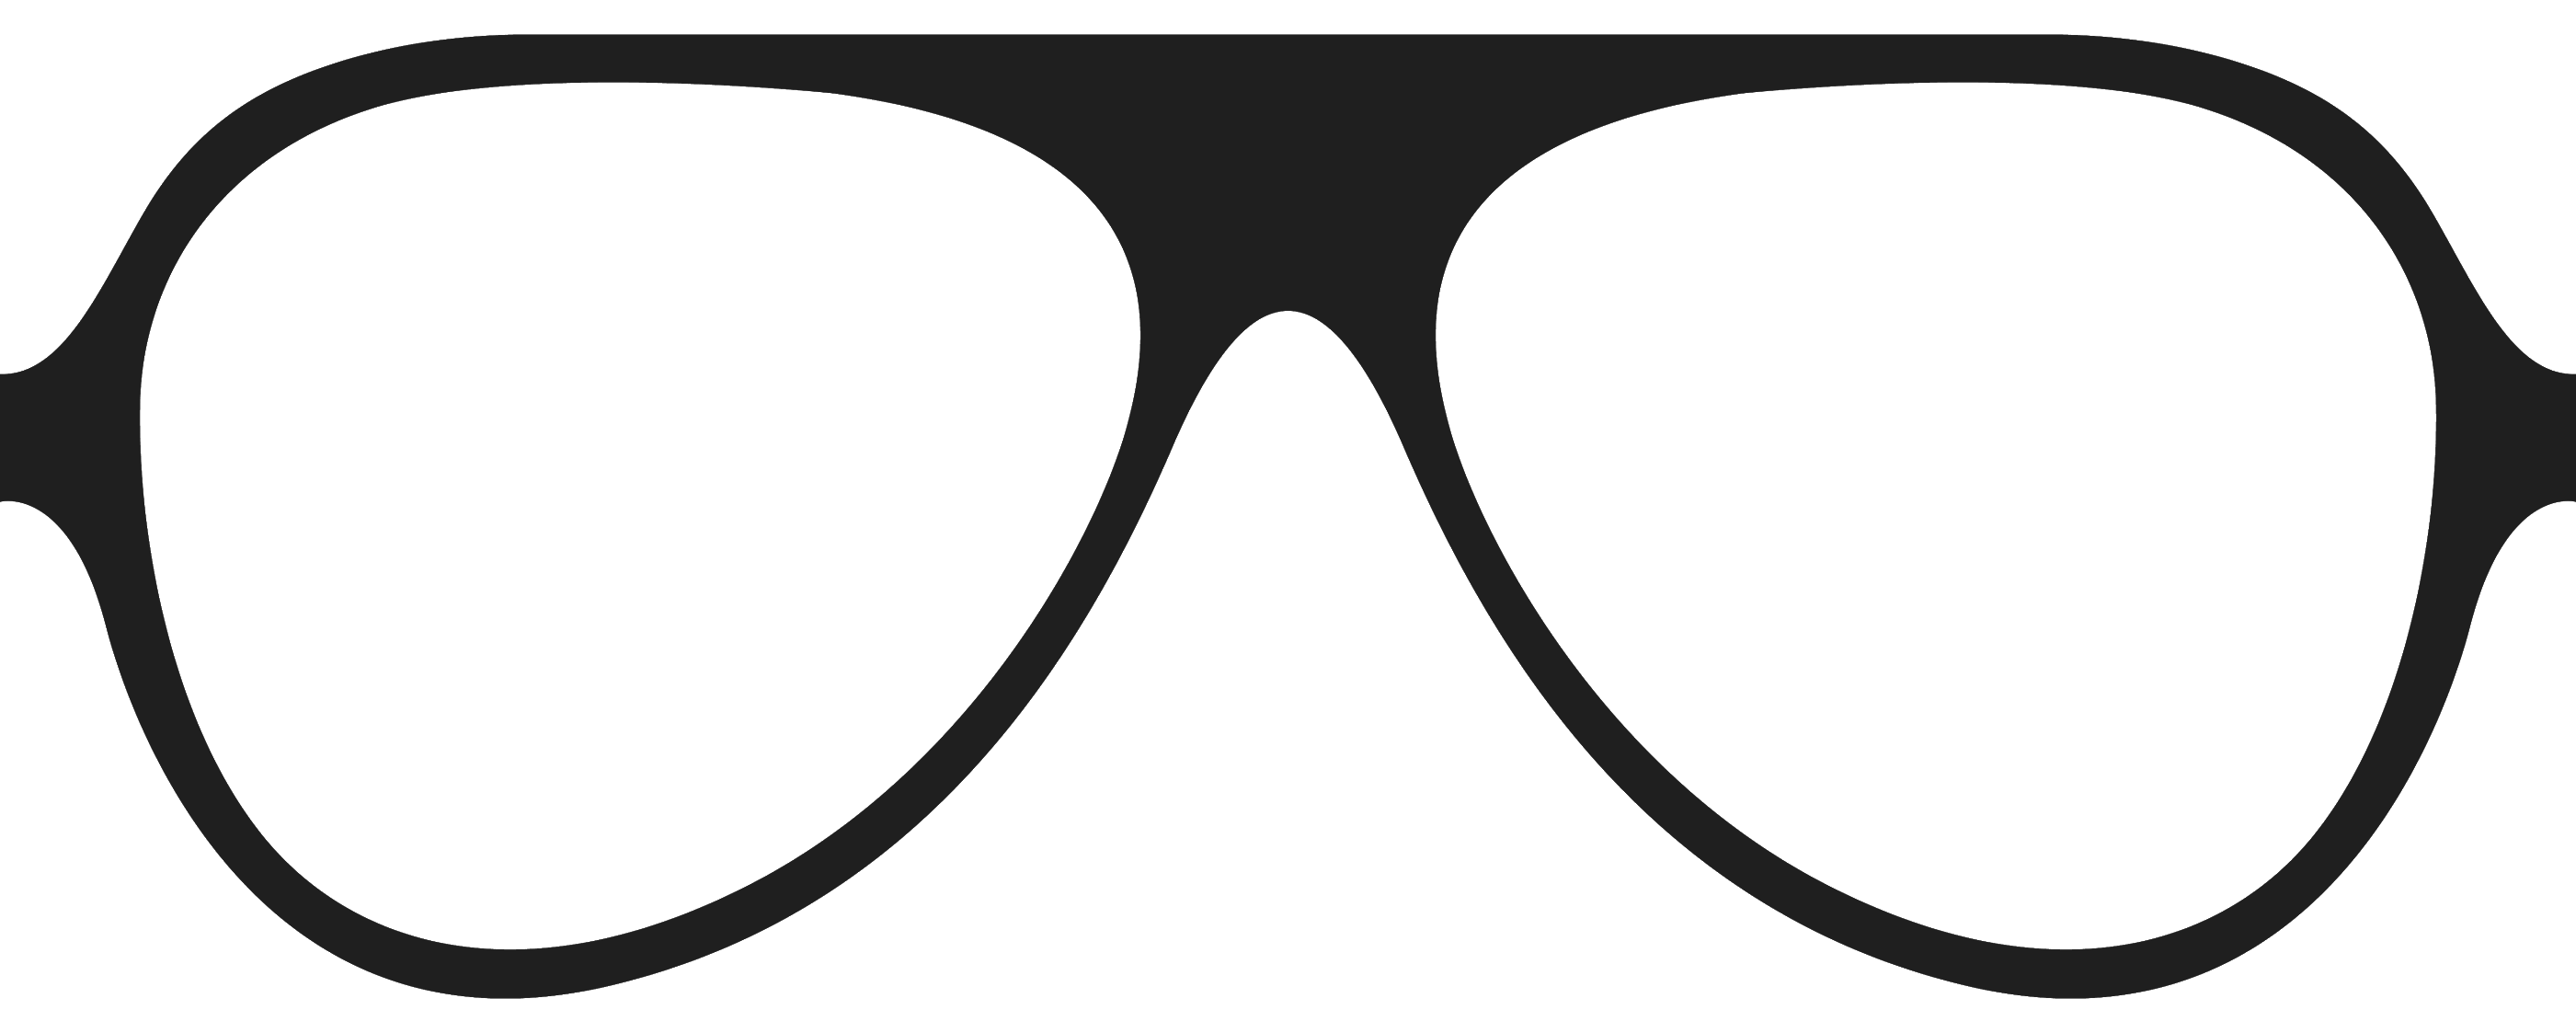 Glass Png Effect Glasses Png Image Glasses Pictures Png